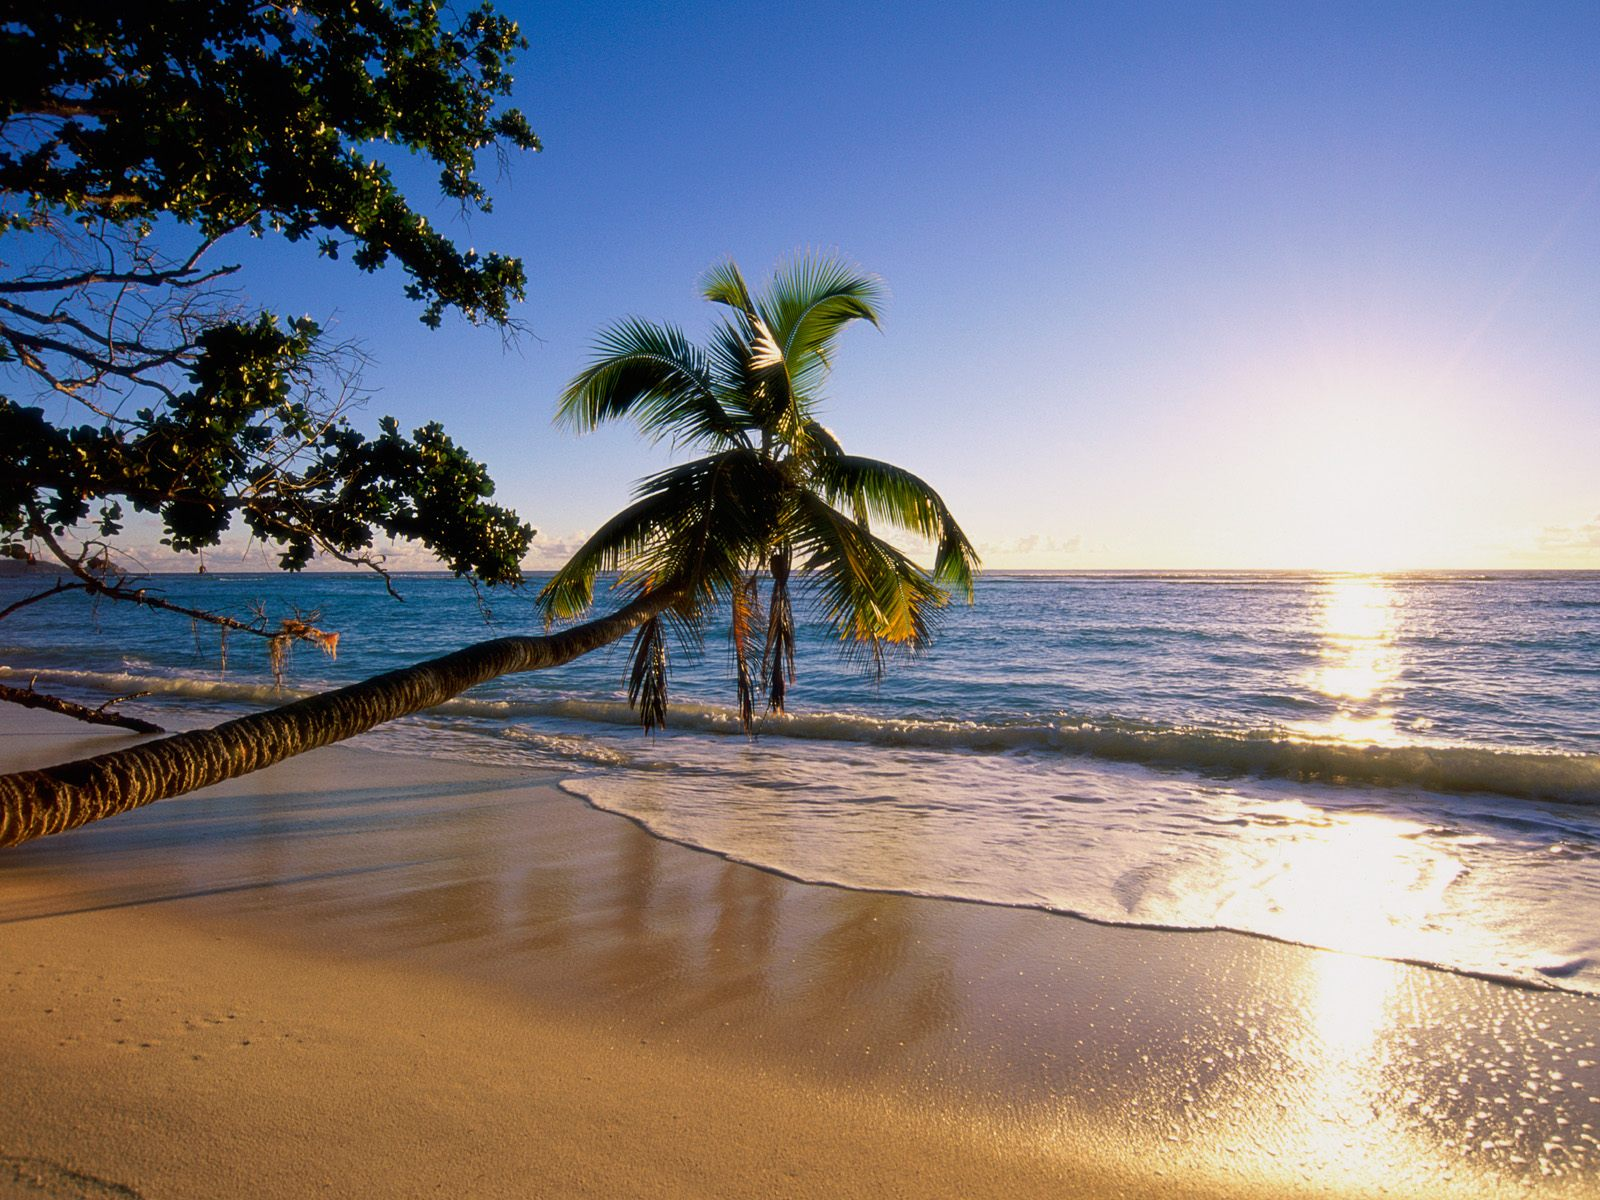 Hd Tropical Island Beach Paradise Wallpapers And Backgrounds: Silhouette Island Picture, Silhouette Island Photo